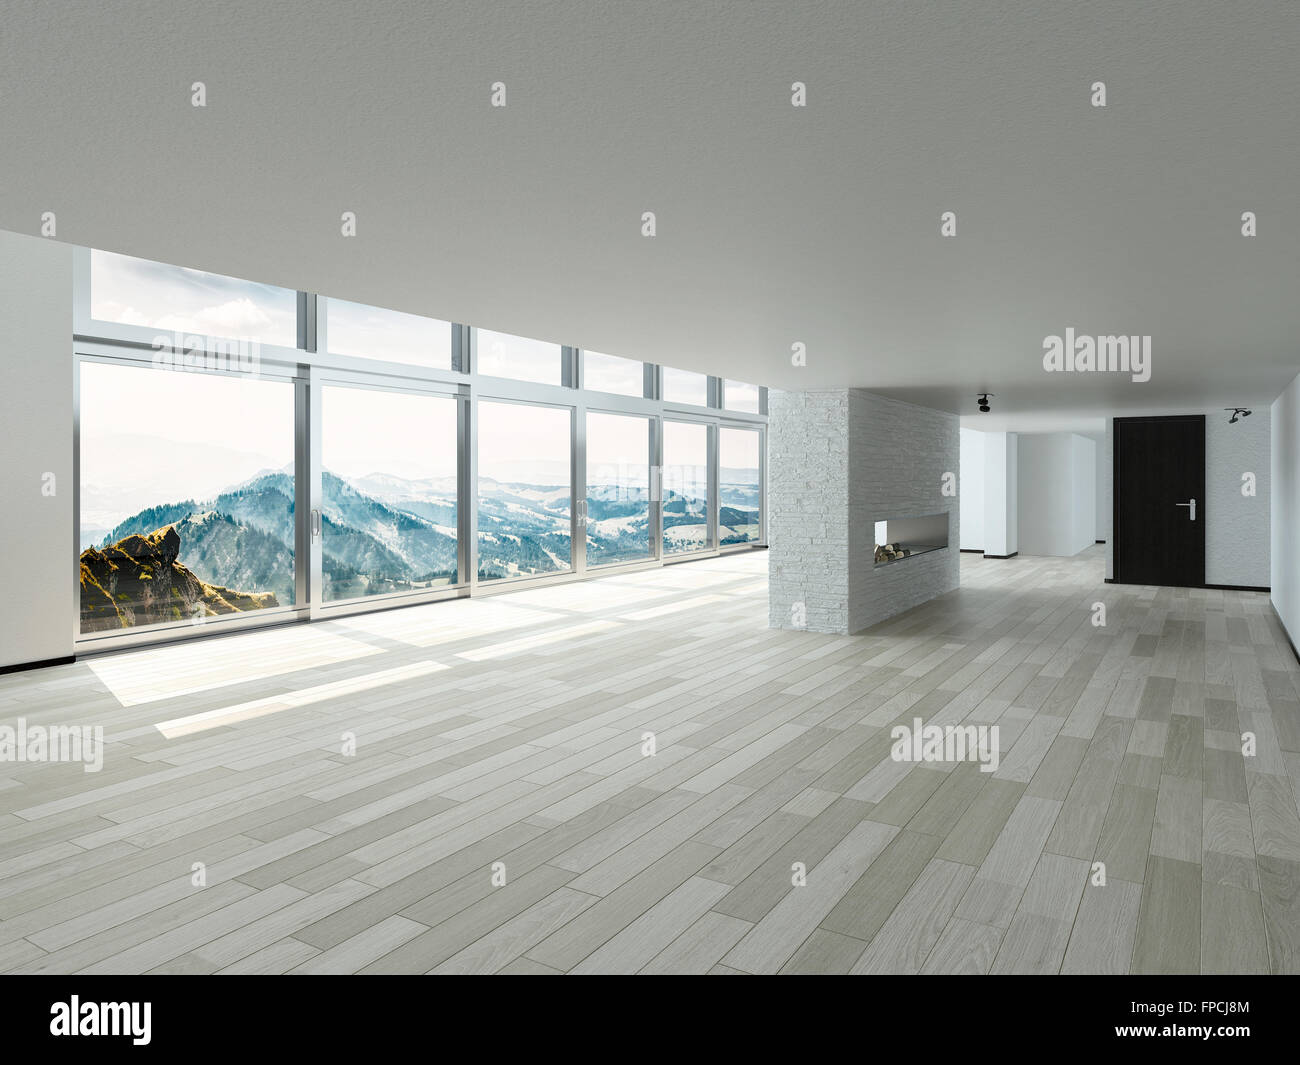 Interior windows architectural - Brand New Empty Architectural House Building Interior Design With Glass Windows For Beautiful Overlooking Outside Stock